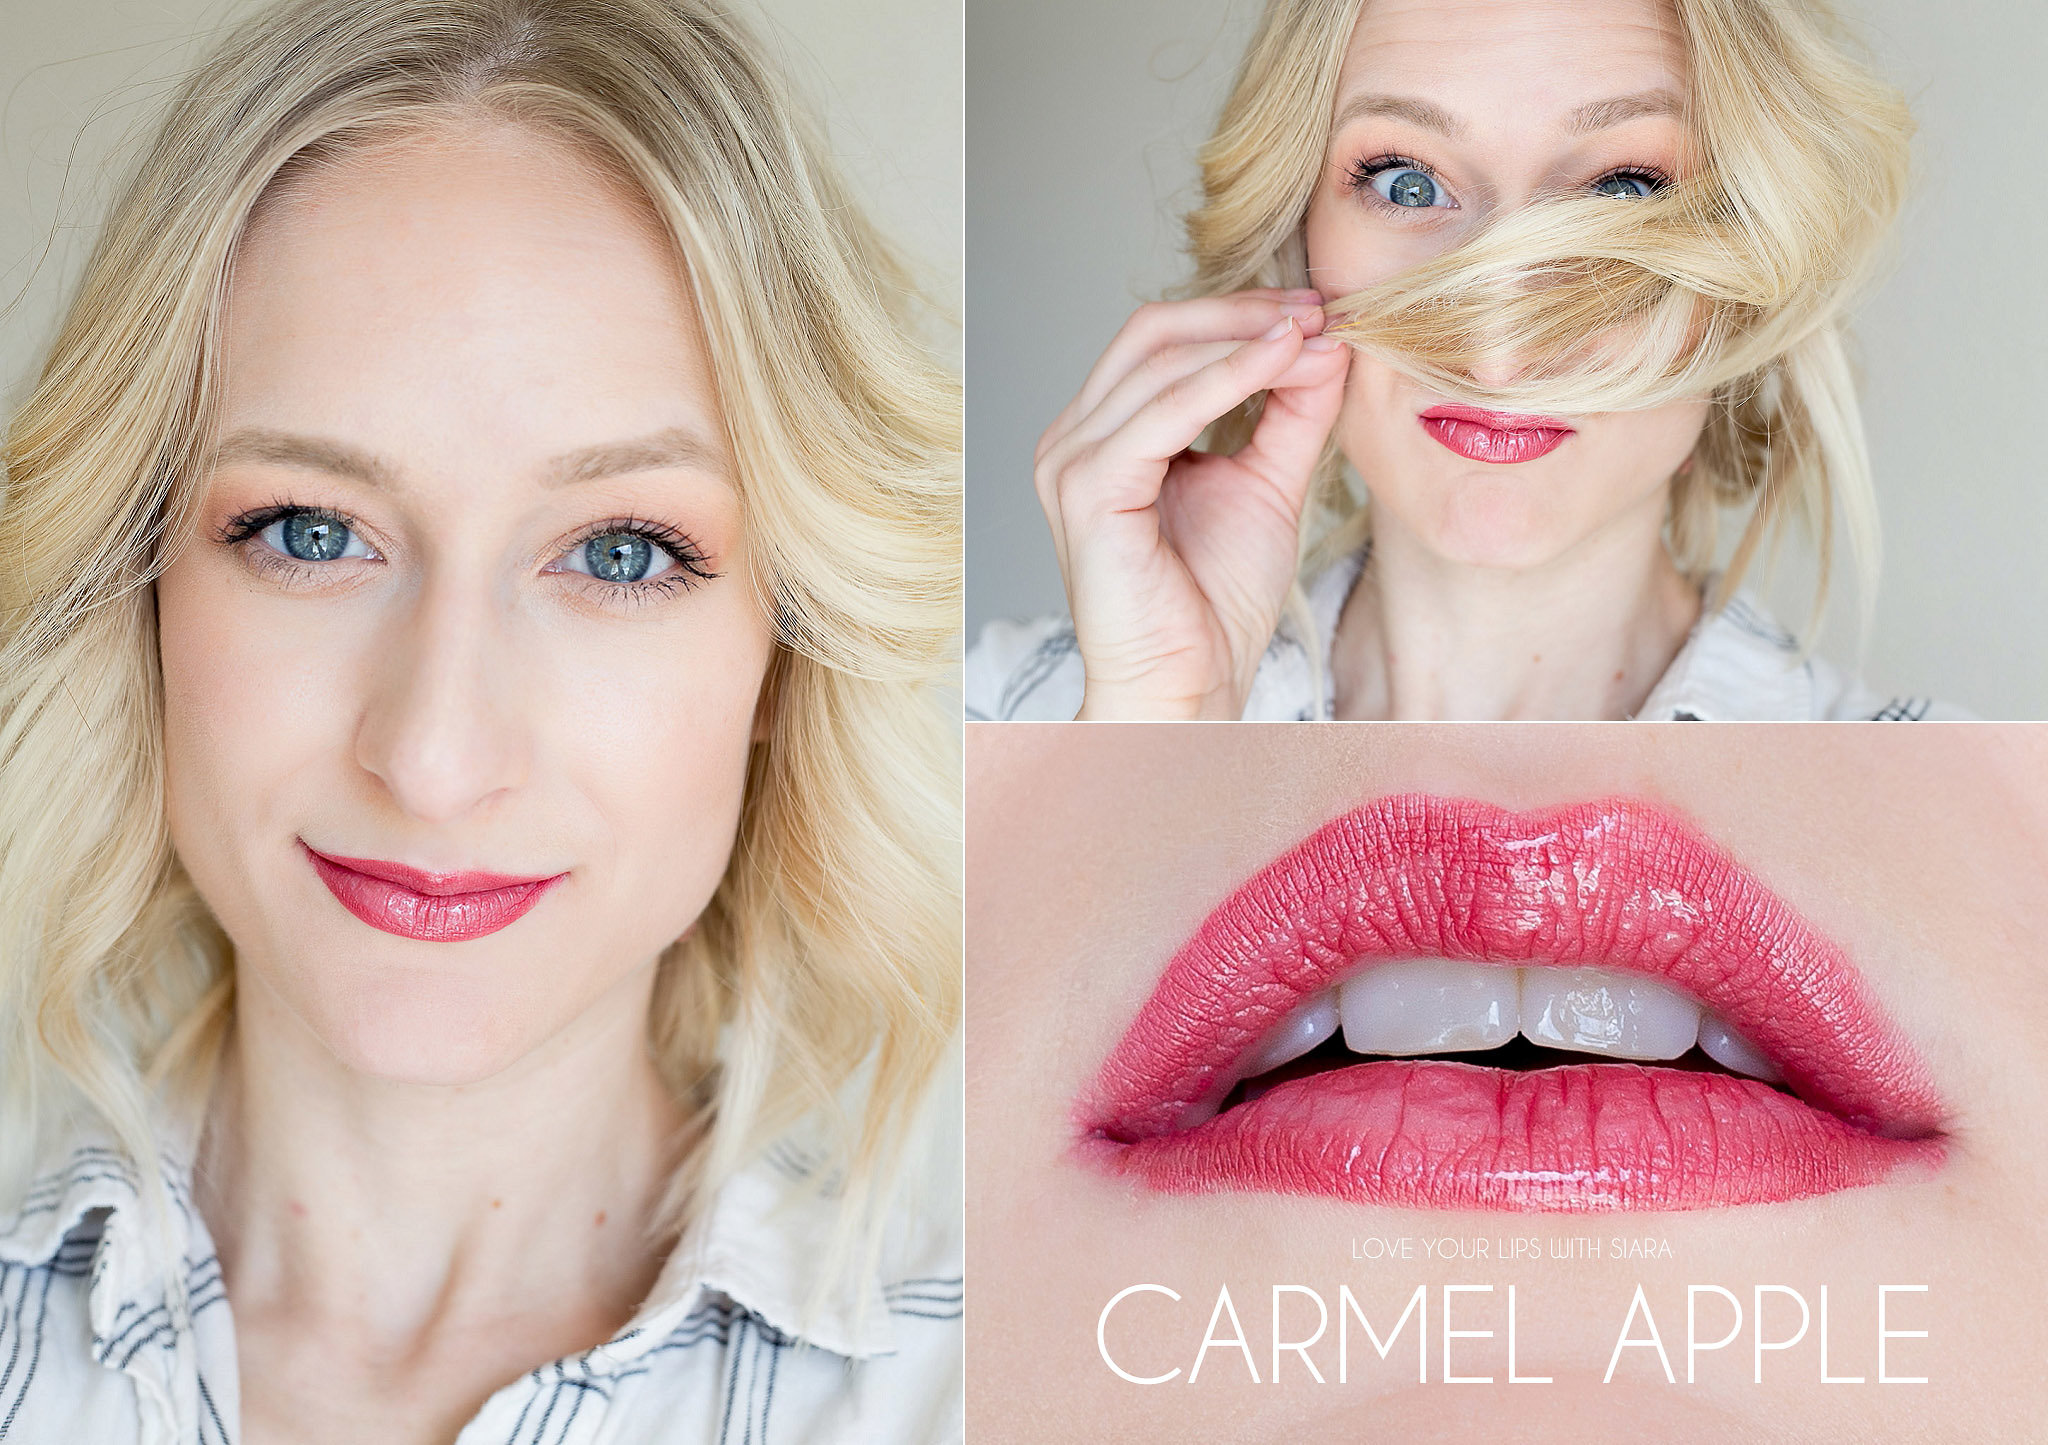 Carmel Apple LipSense giveaway